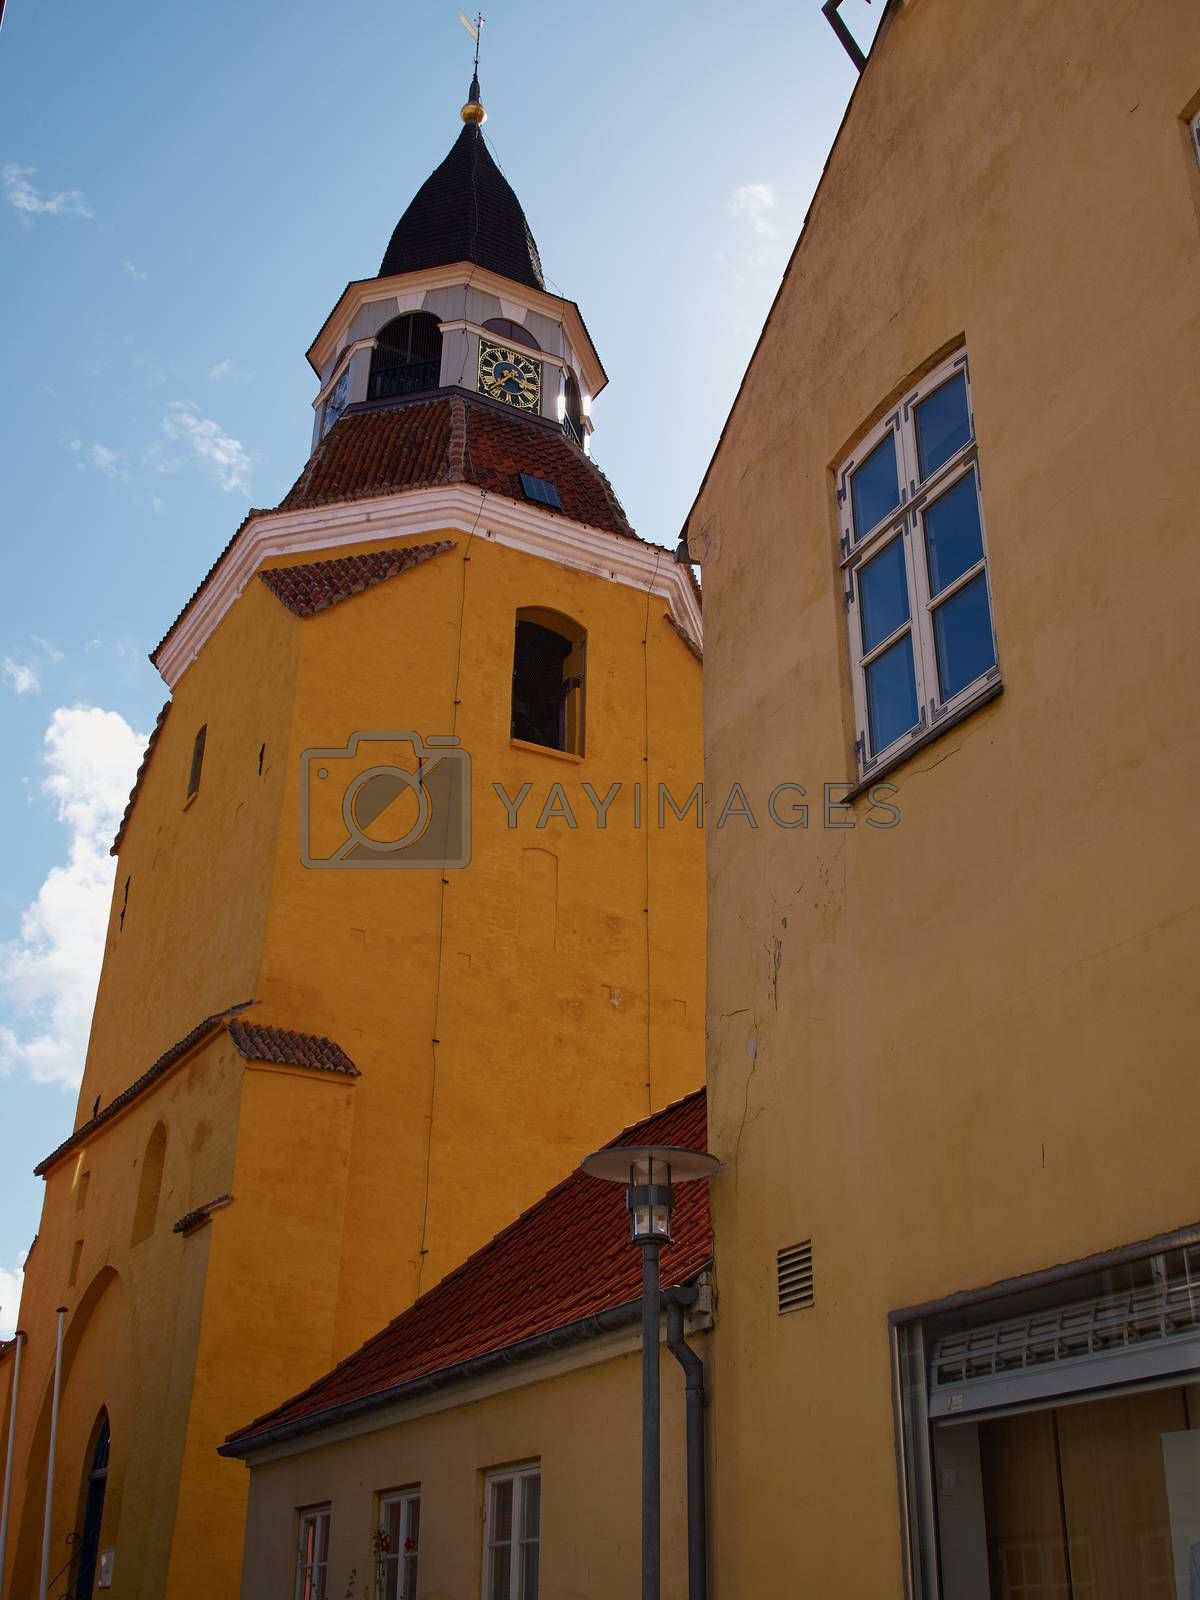 Royalty free image of Bell tower in Faaborg Funen Denmark by Ronyzmbow